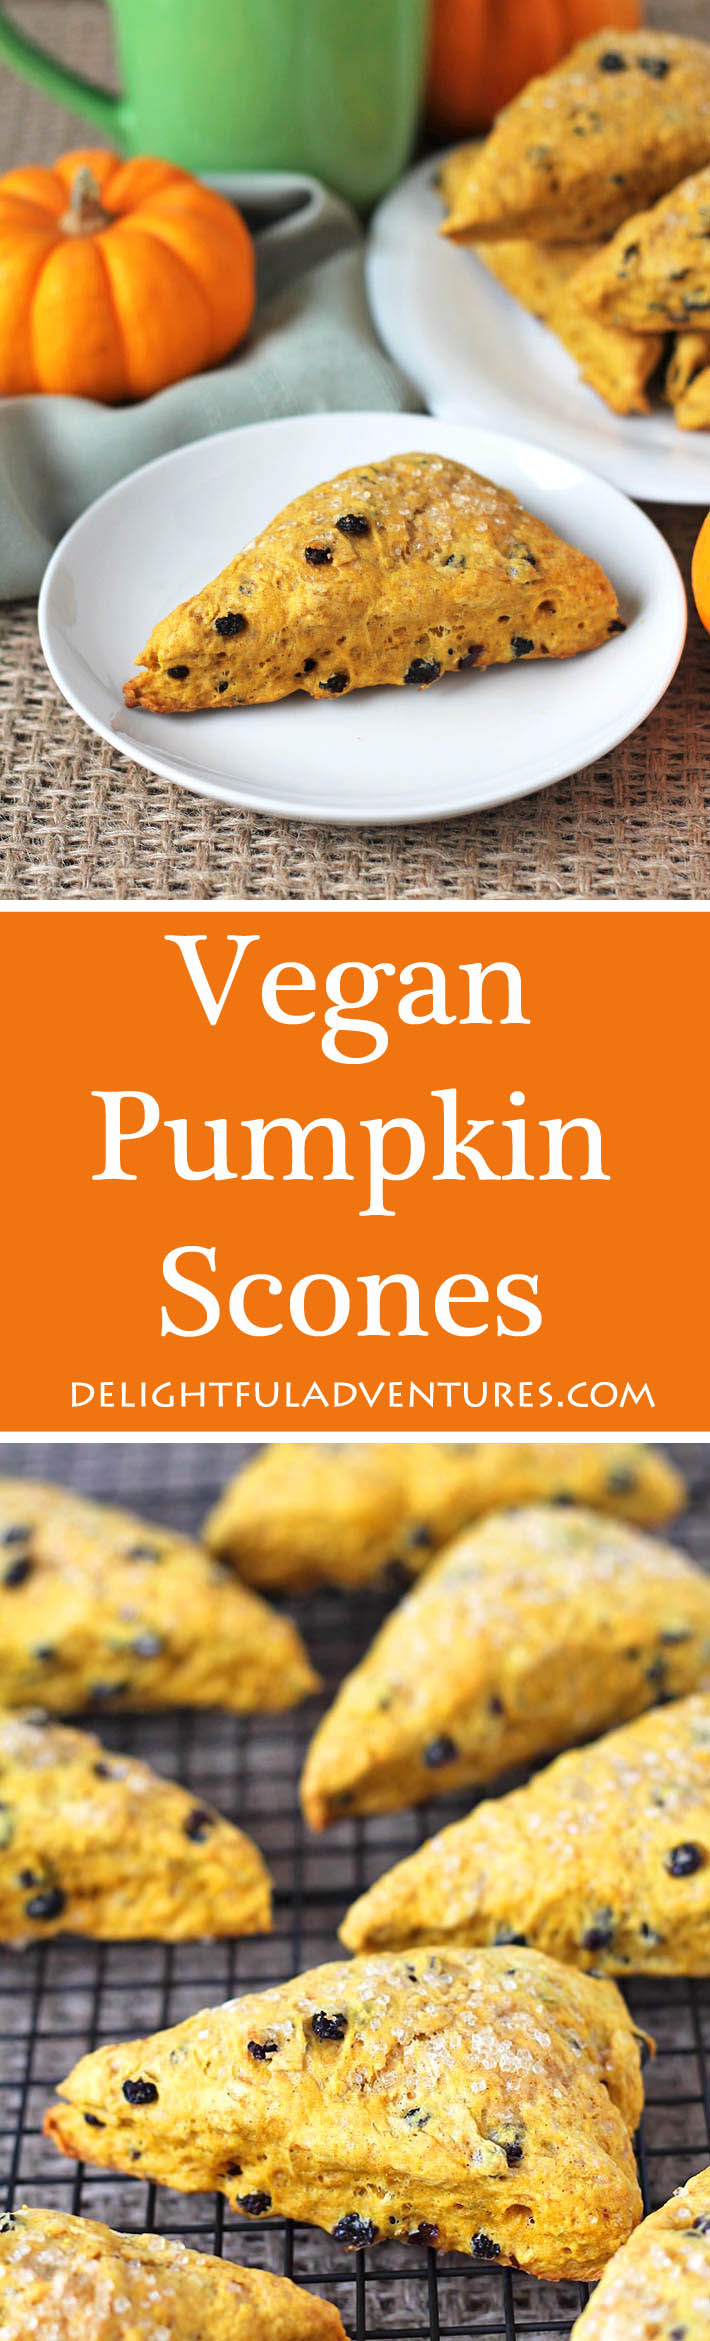 These perfectly spiced and not-too-sweet vegan pumpkin scones will become a new fall (or any time of year!) favourite. They are perfect to have with tea! #veganscones #pumpkinscones #pumpkinspice #vegantreats, #vegandessert